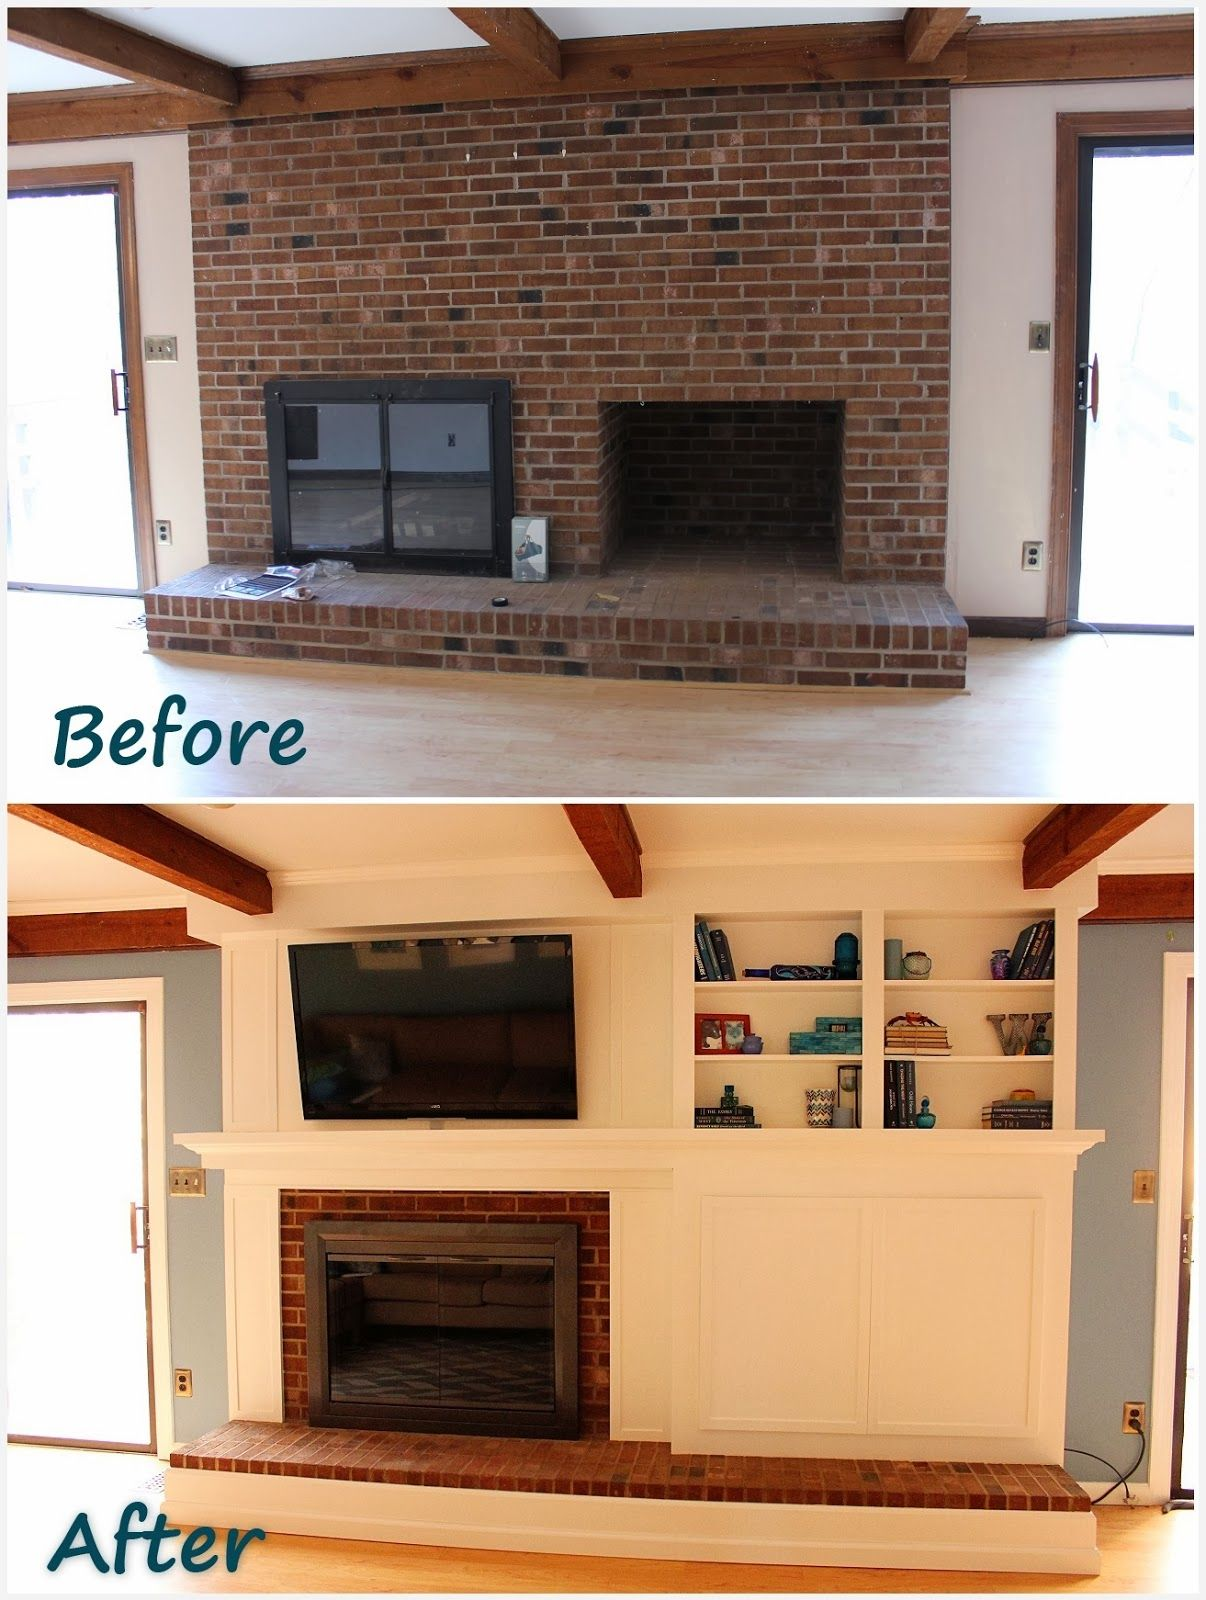 Cover Brick Fireplace With Wood Panels Fireplace Remodel Diy A Fireplace Facade To Cover An Old